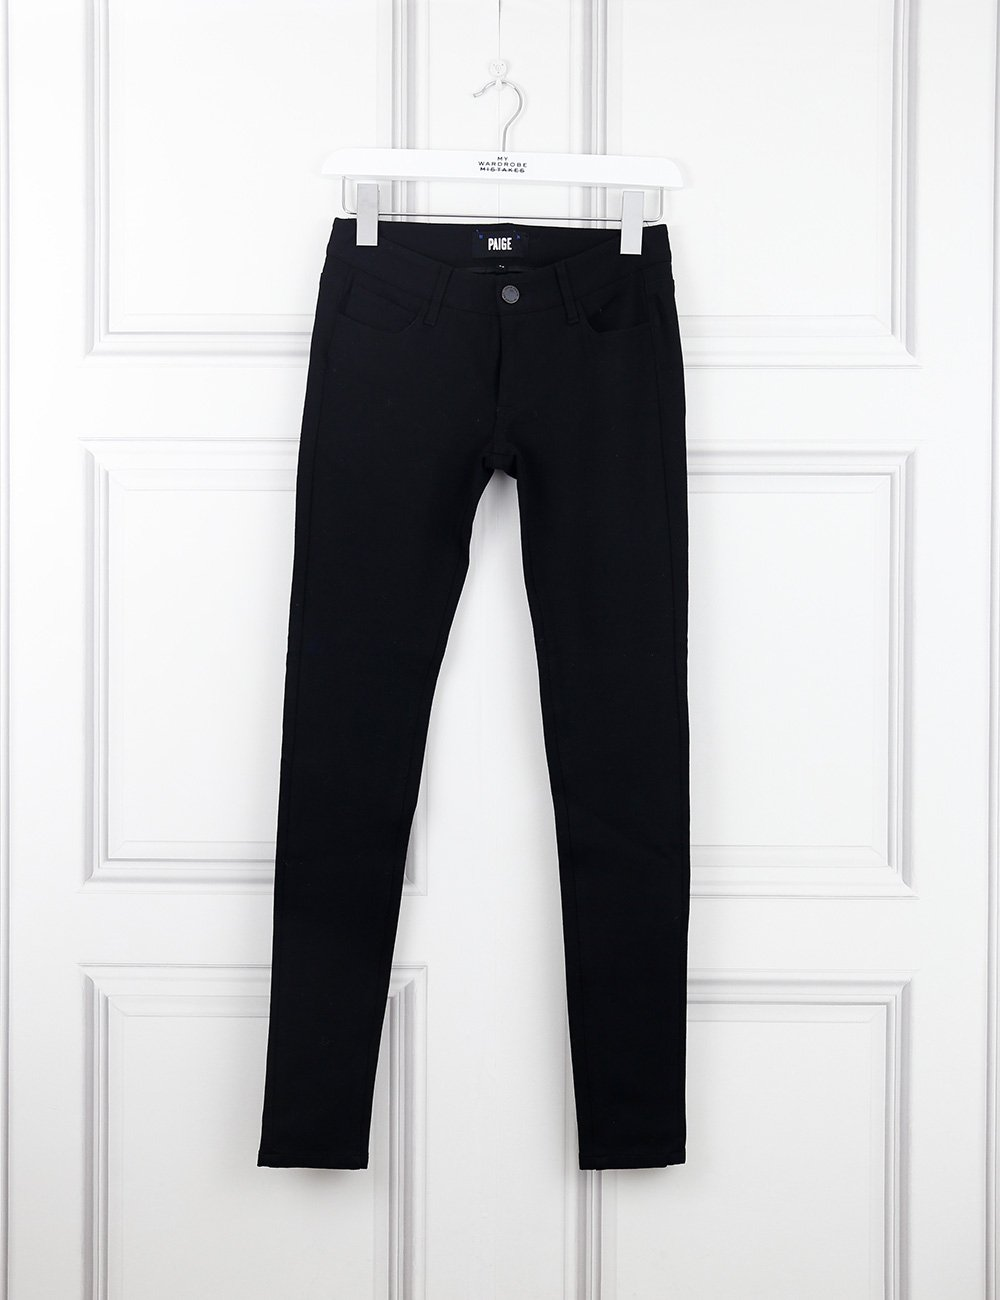 Paige black skyline skinny jeans 8UK- My Wardrobe Mistakes